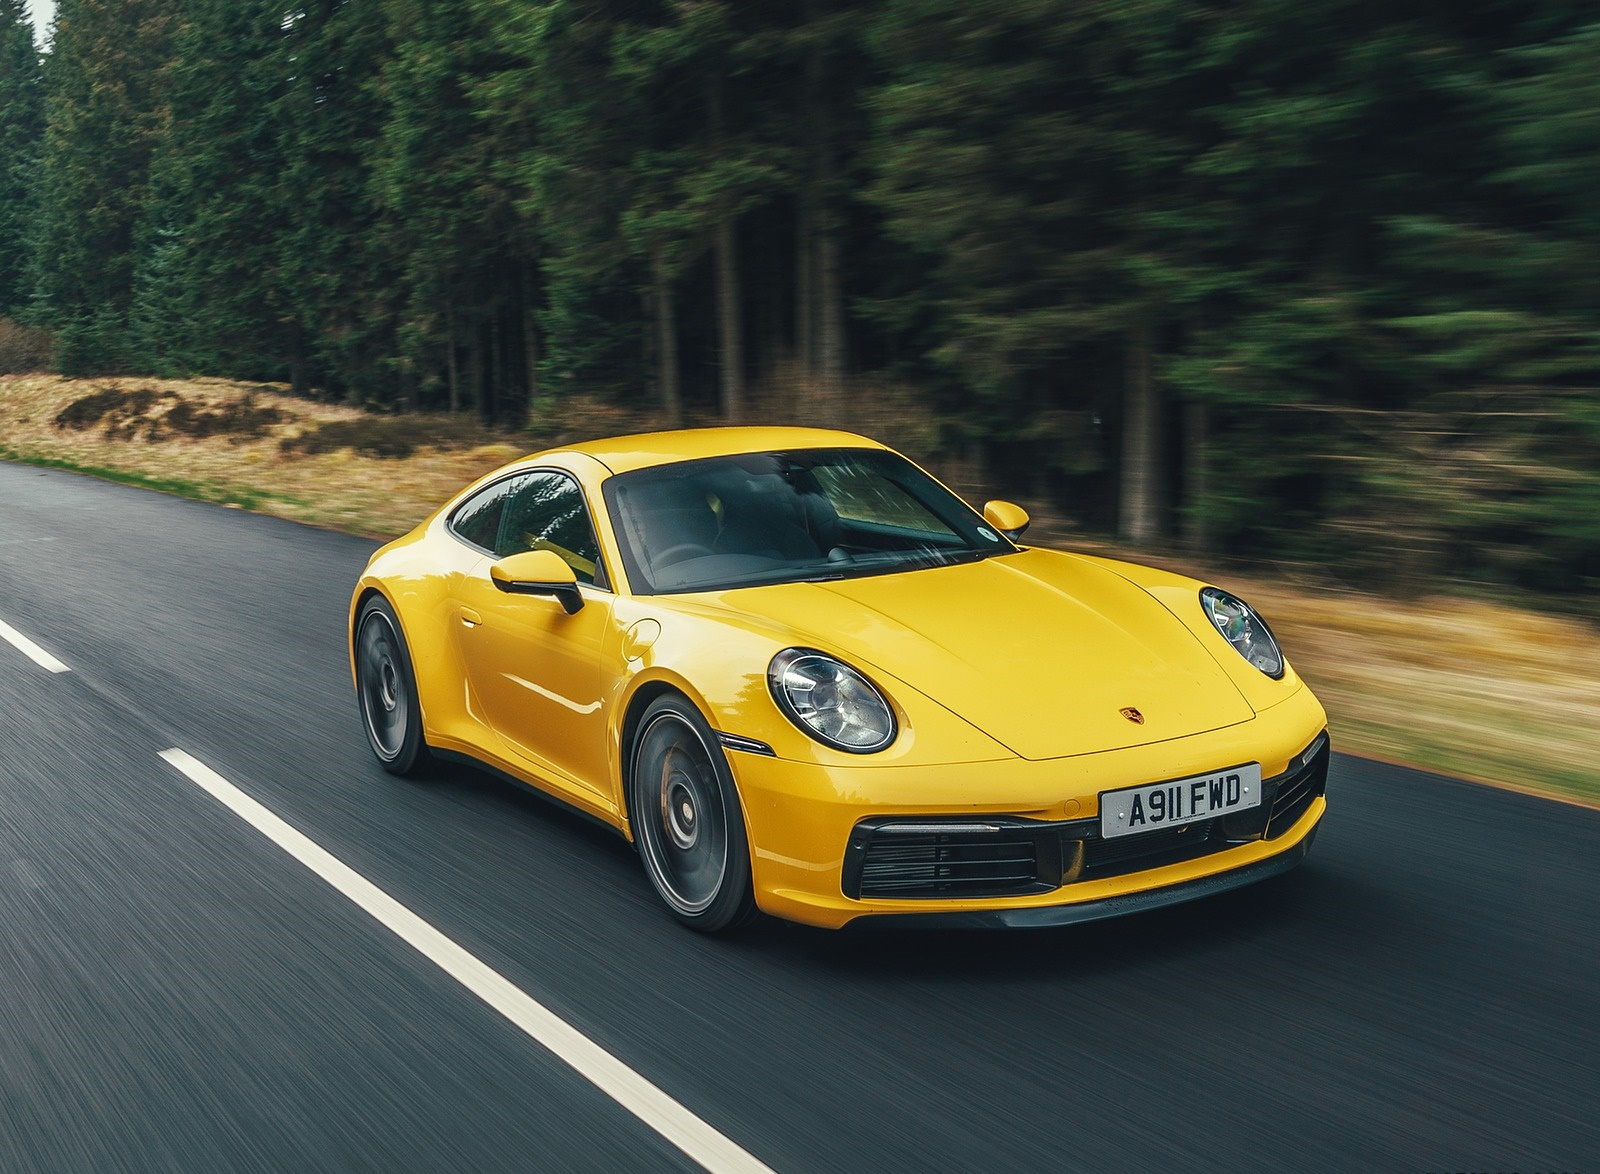 2019 Porsche 911 (992) Carrera 4S (UK-Spec) Front Three-Quarter Wallpaper (2)